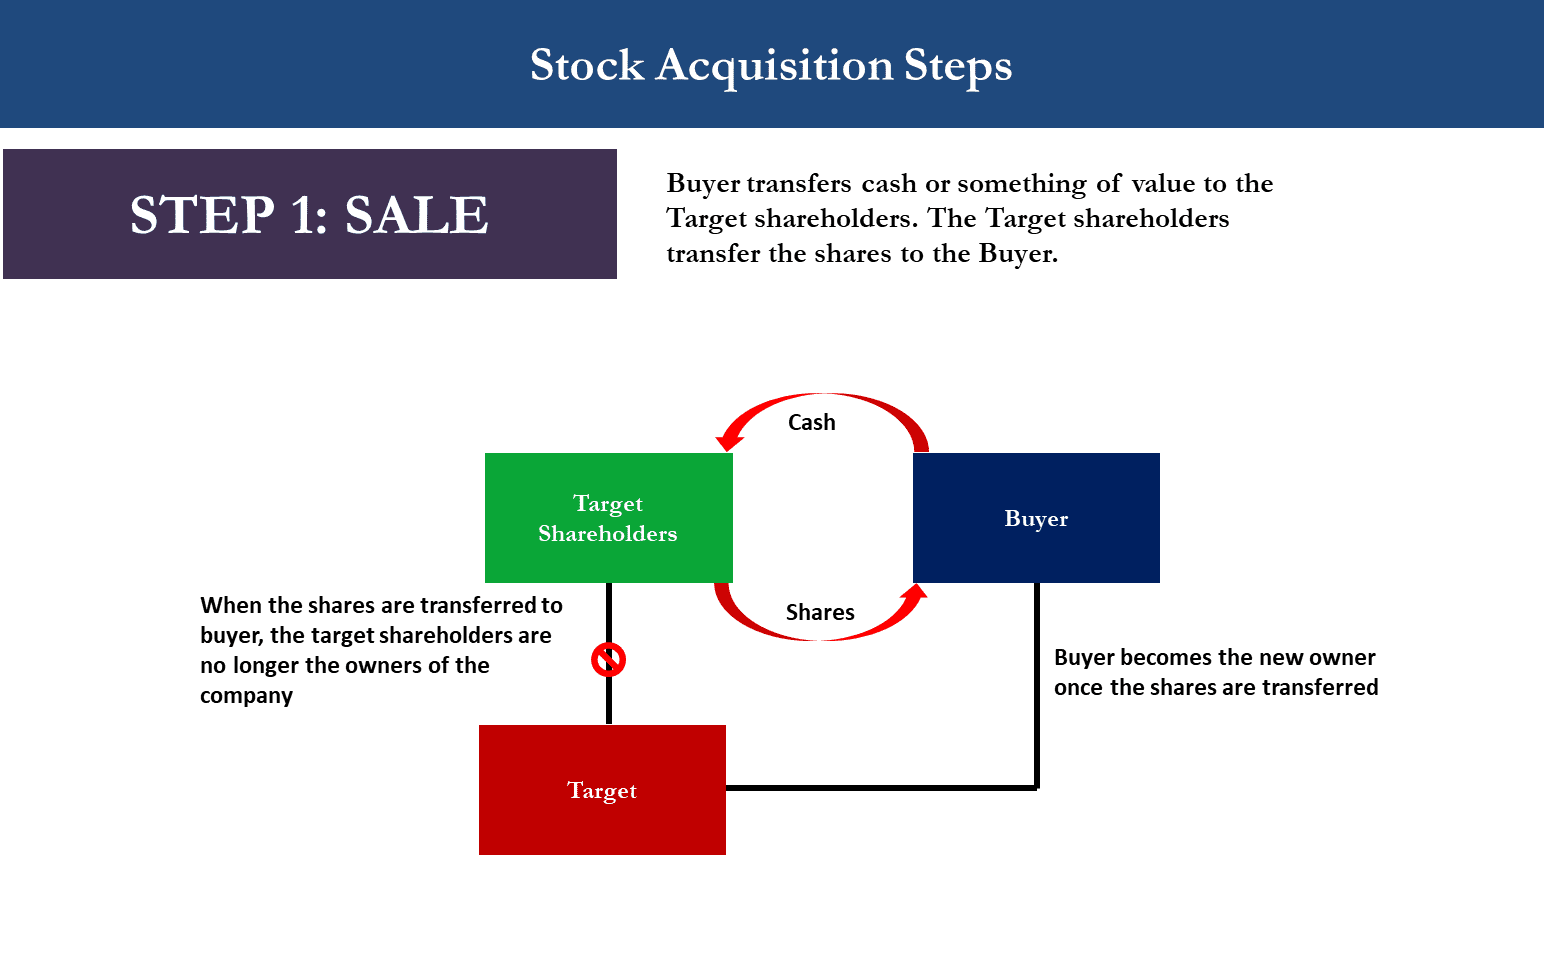 M&A Stock Acquisition Diagram showing Step 1